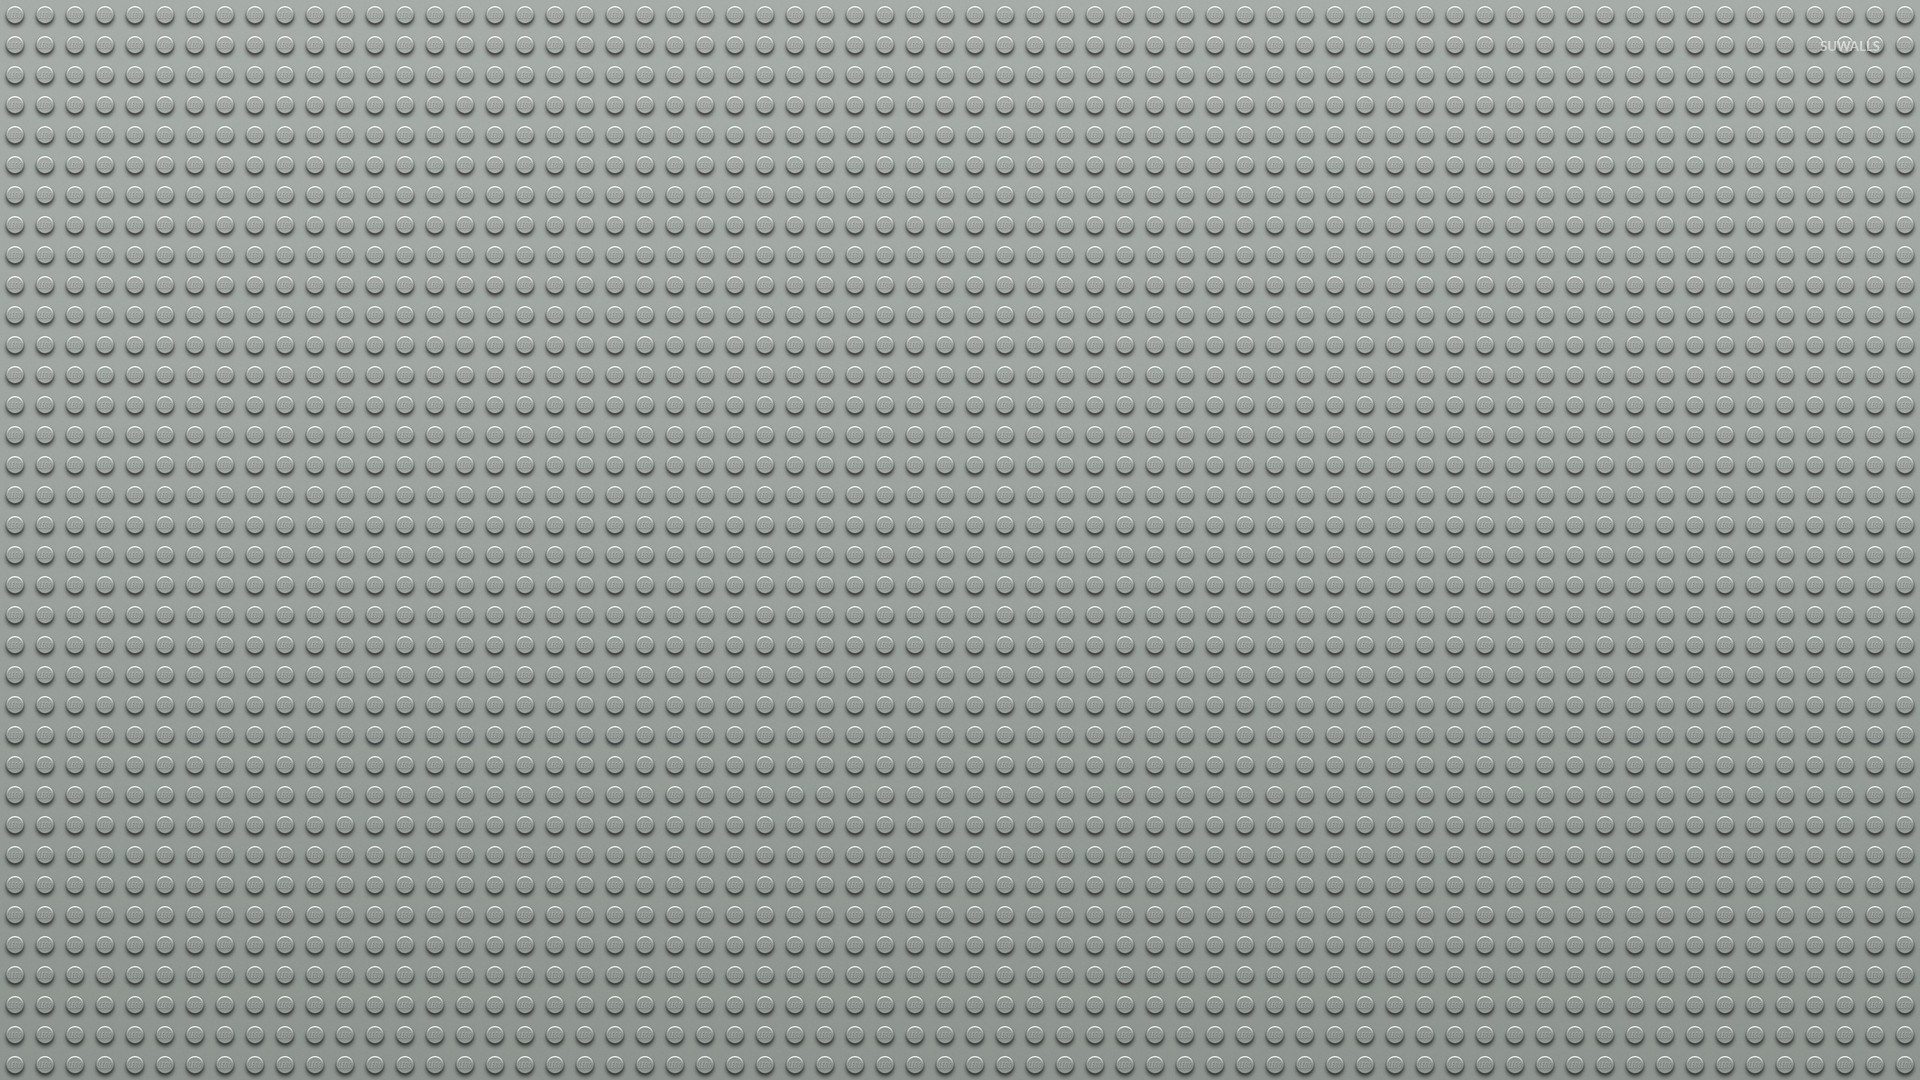 Fall Leave Wallpaper Gray Lego Board Wallpaper Digital Art Wallpapers 44374